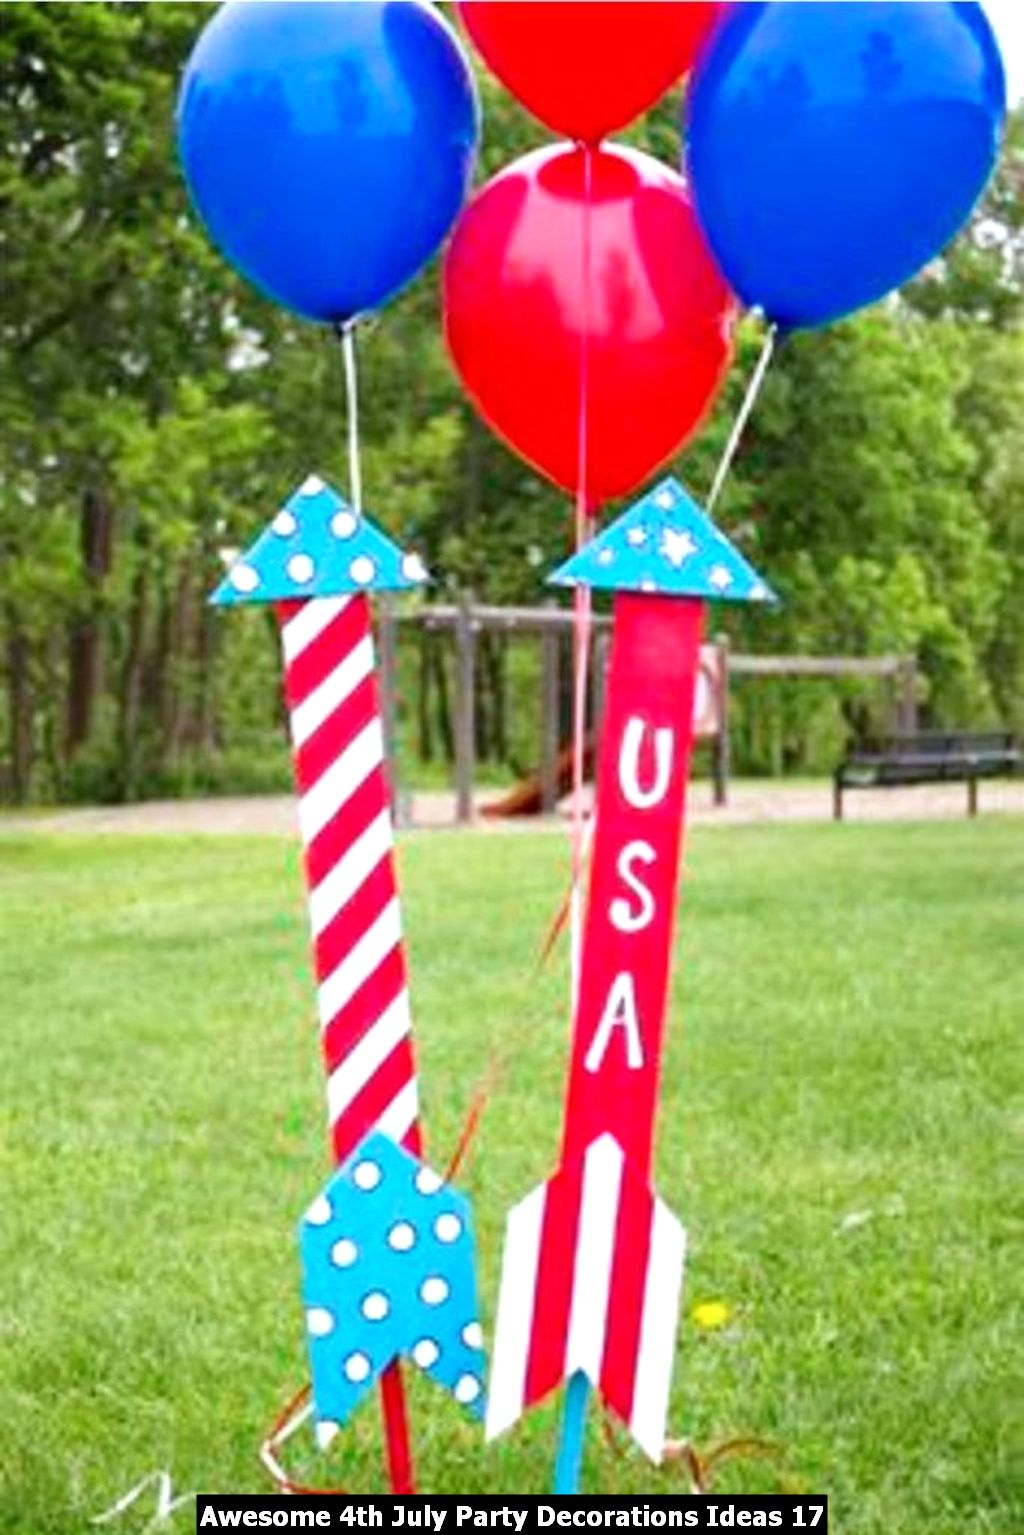 Awesome 4th July Party Decorations Ideas 17